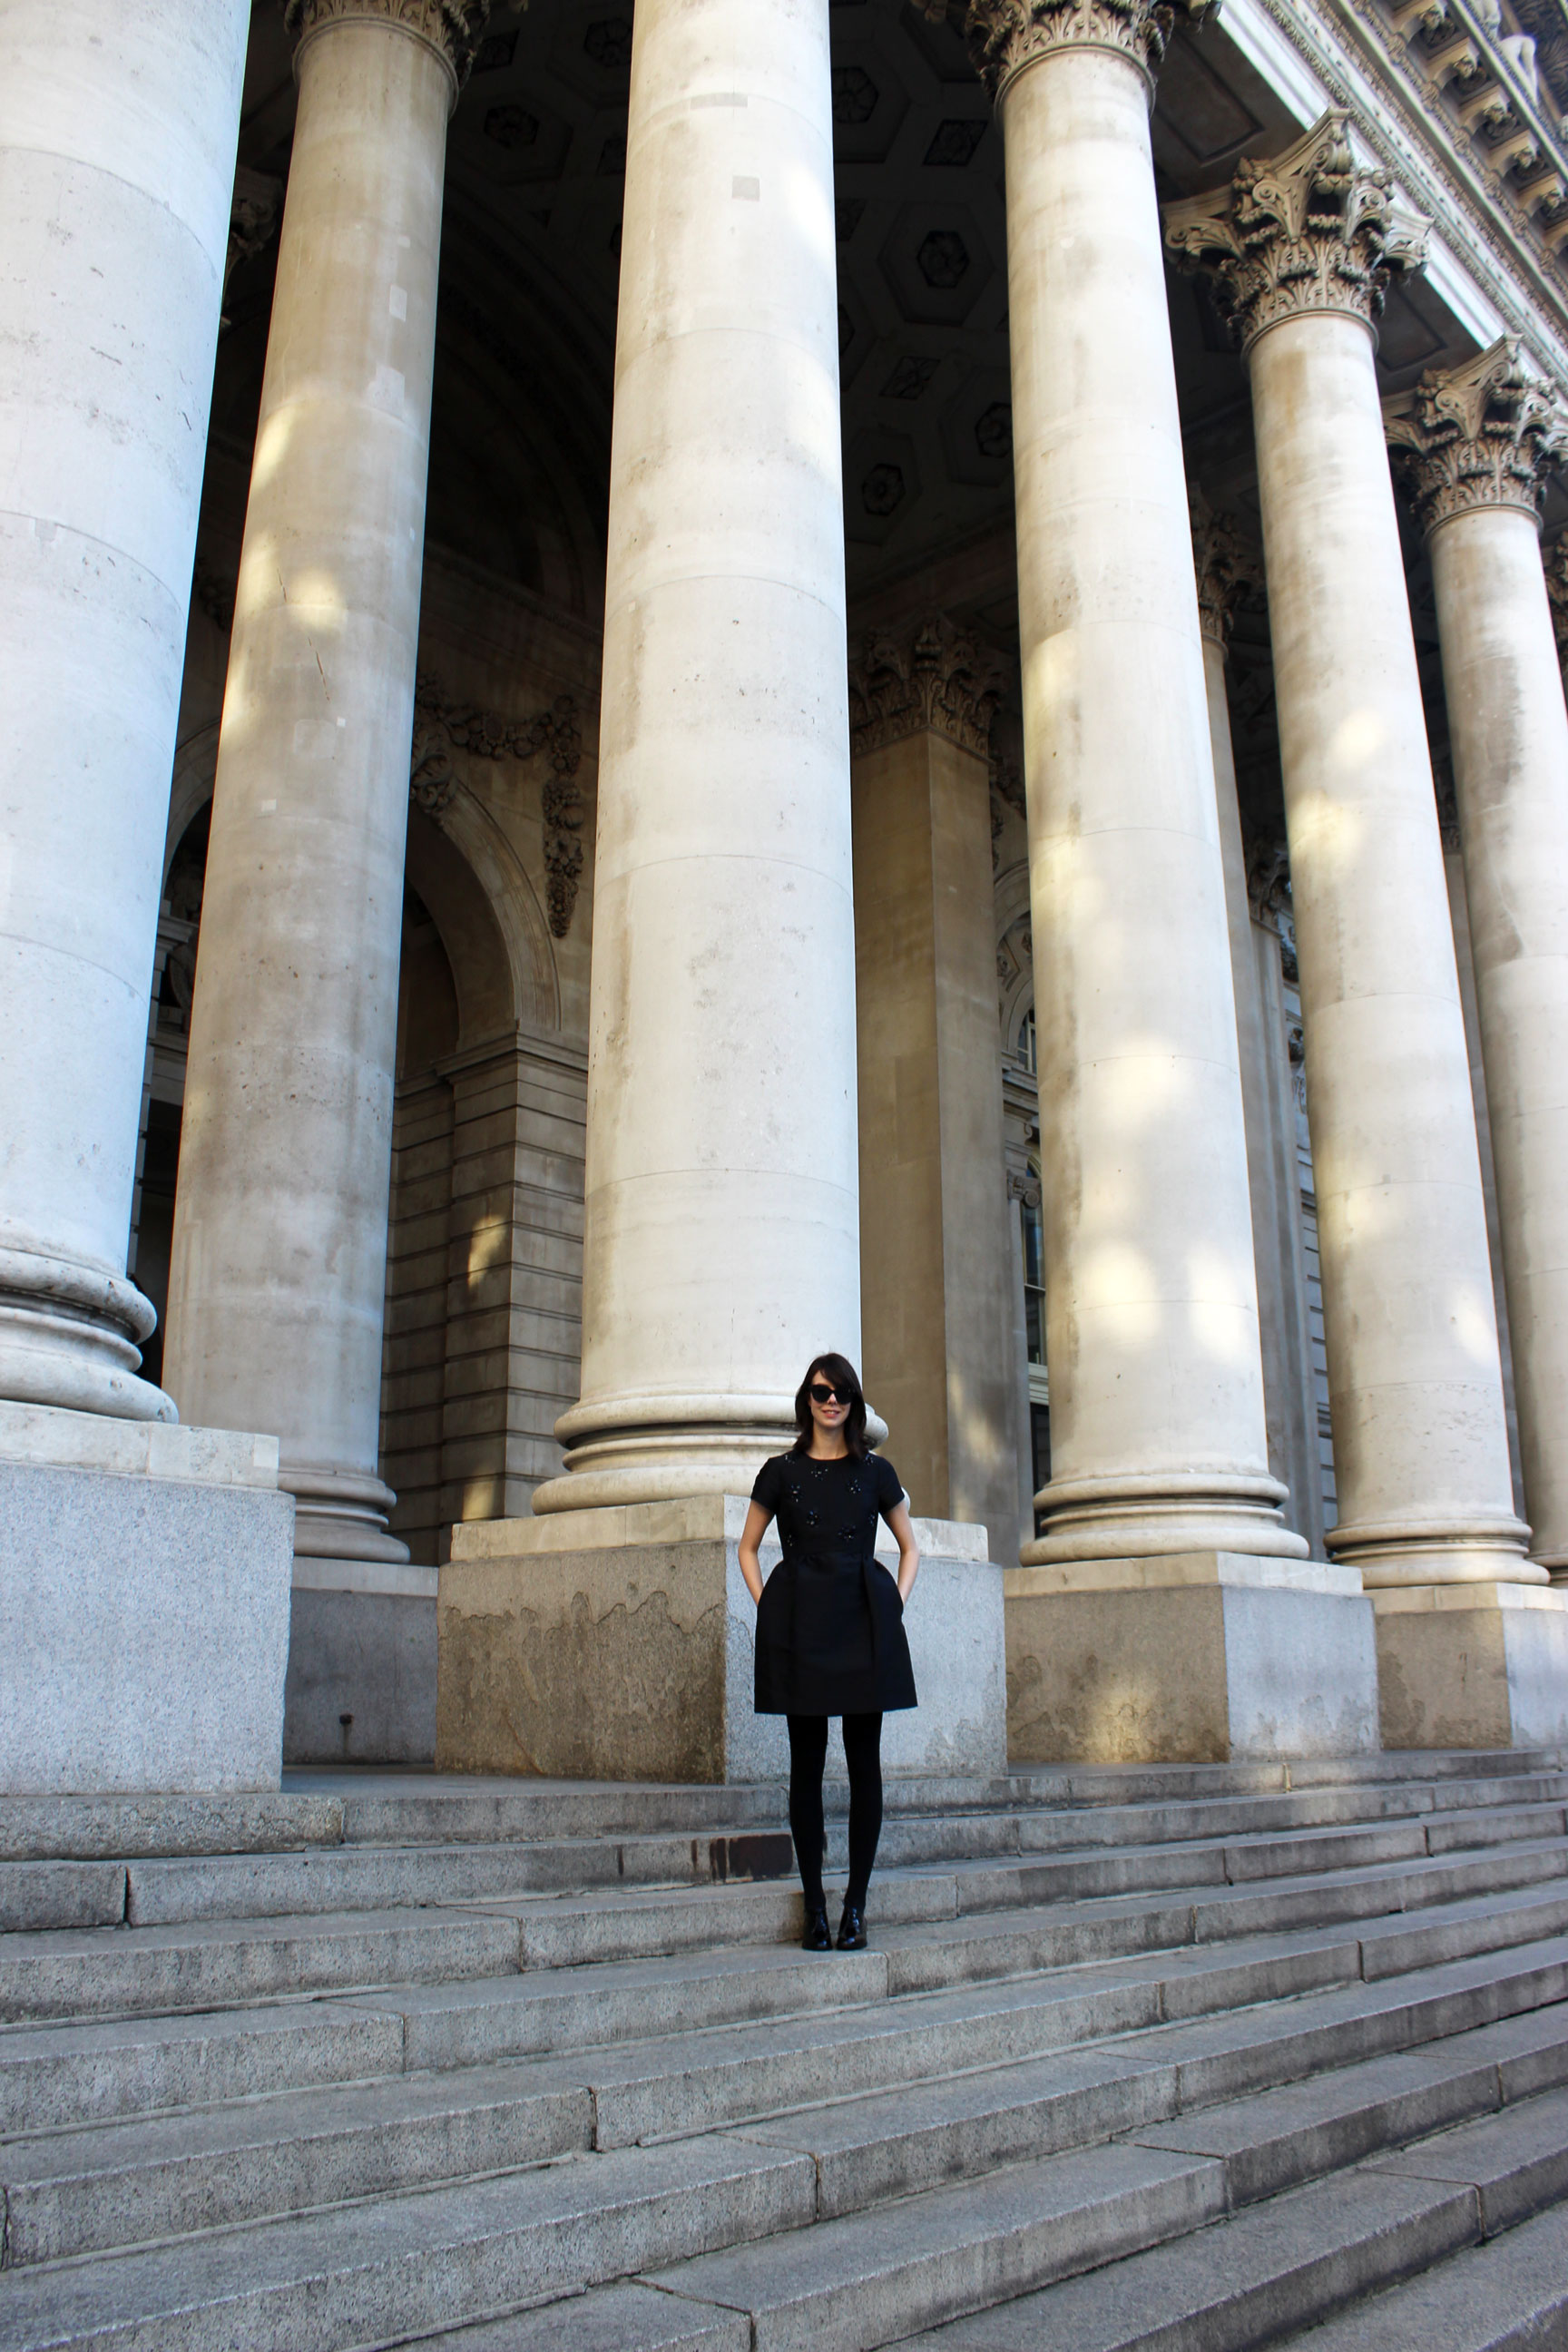 Strolling through London's Bank neighborhood in my favorite little black dress!